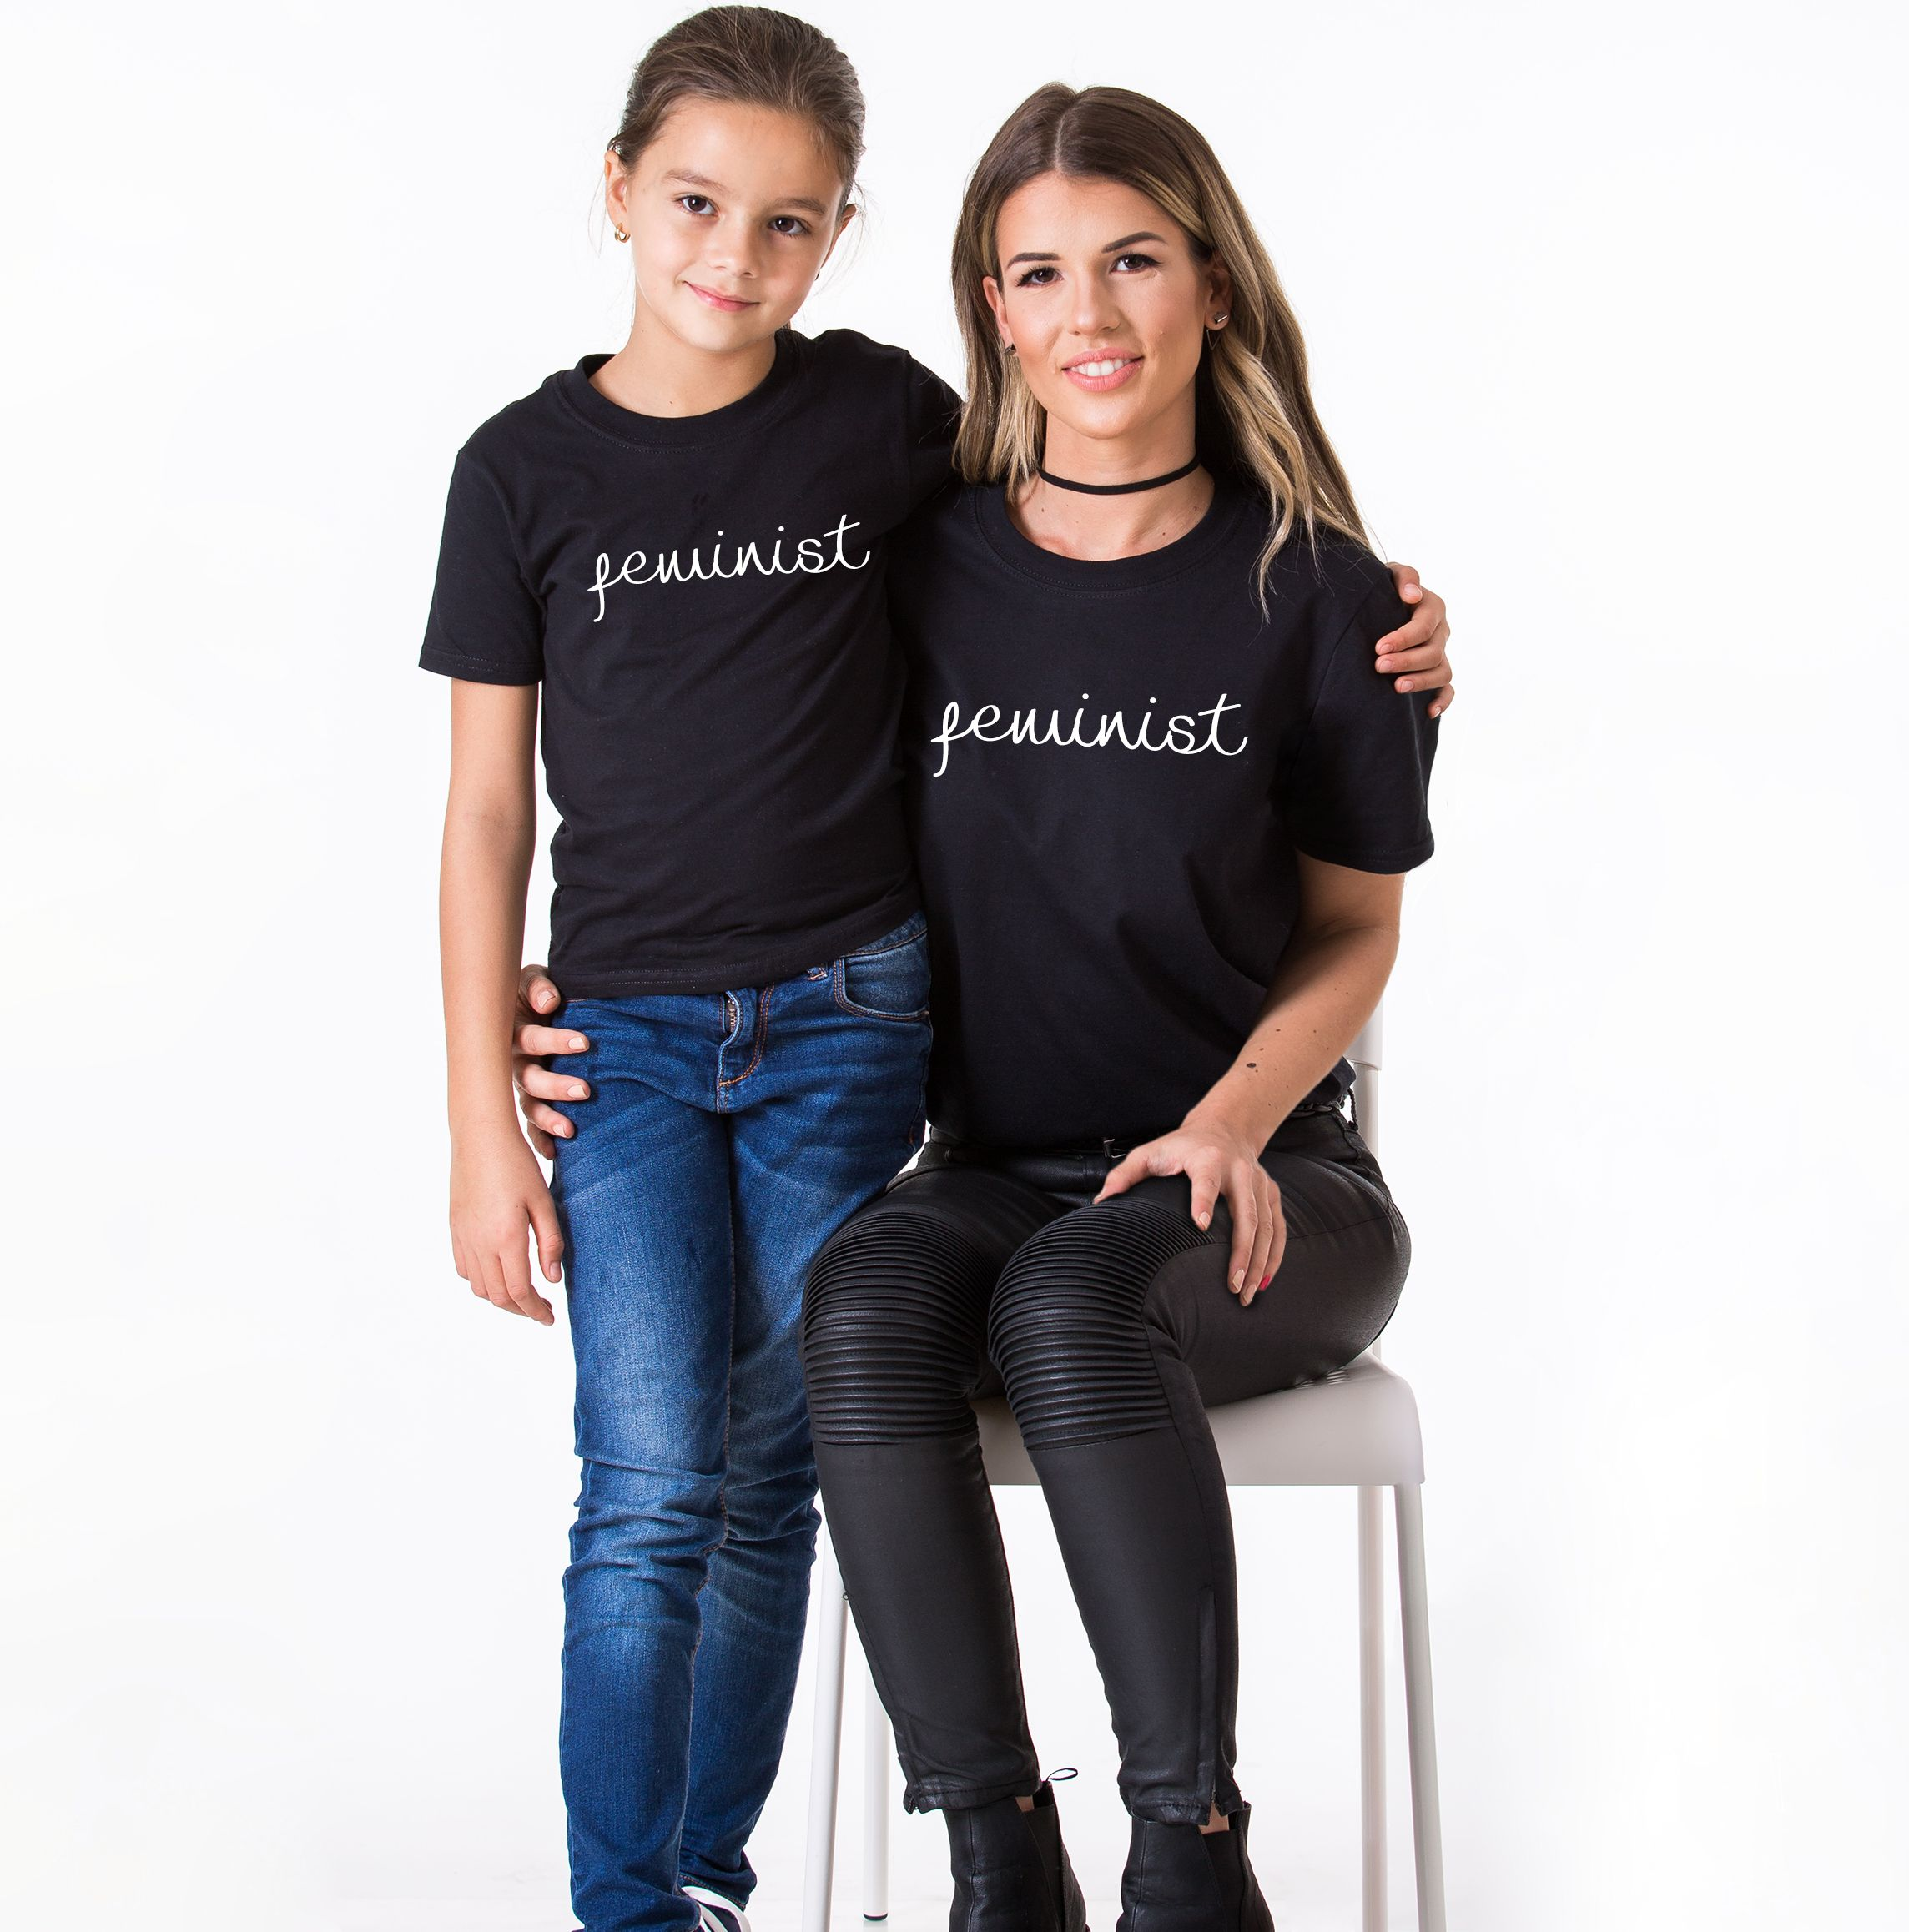 Feminist T Shirts Nz – Rockwall Auction ed8c7cee5276